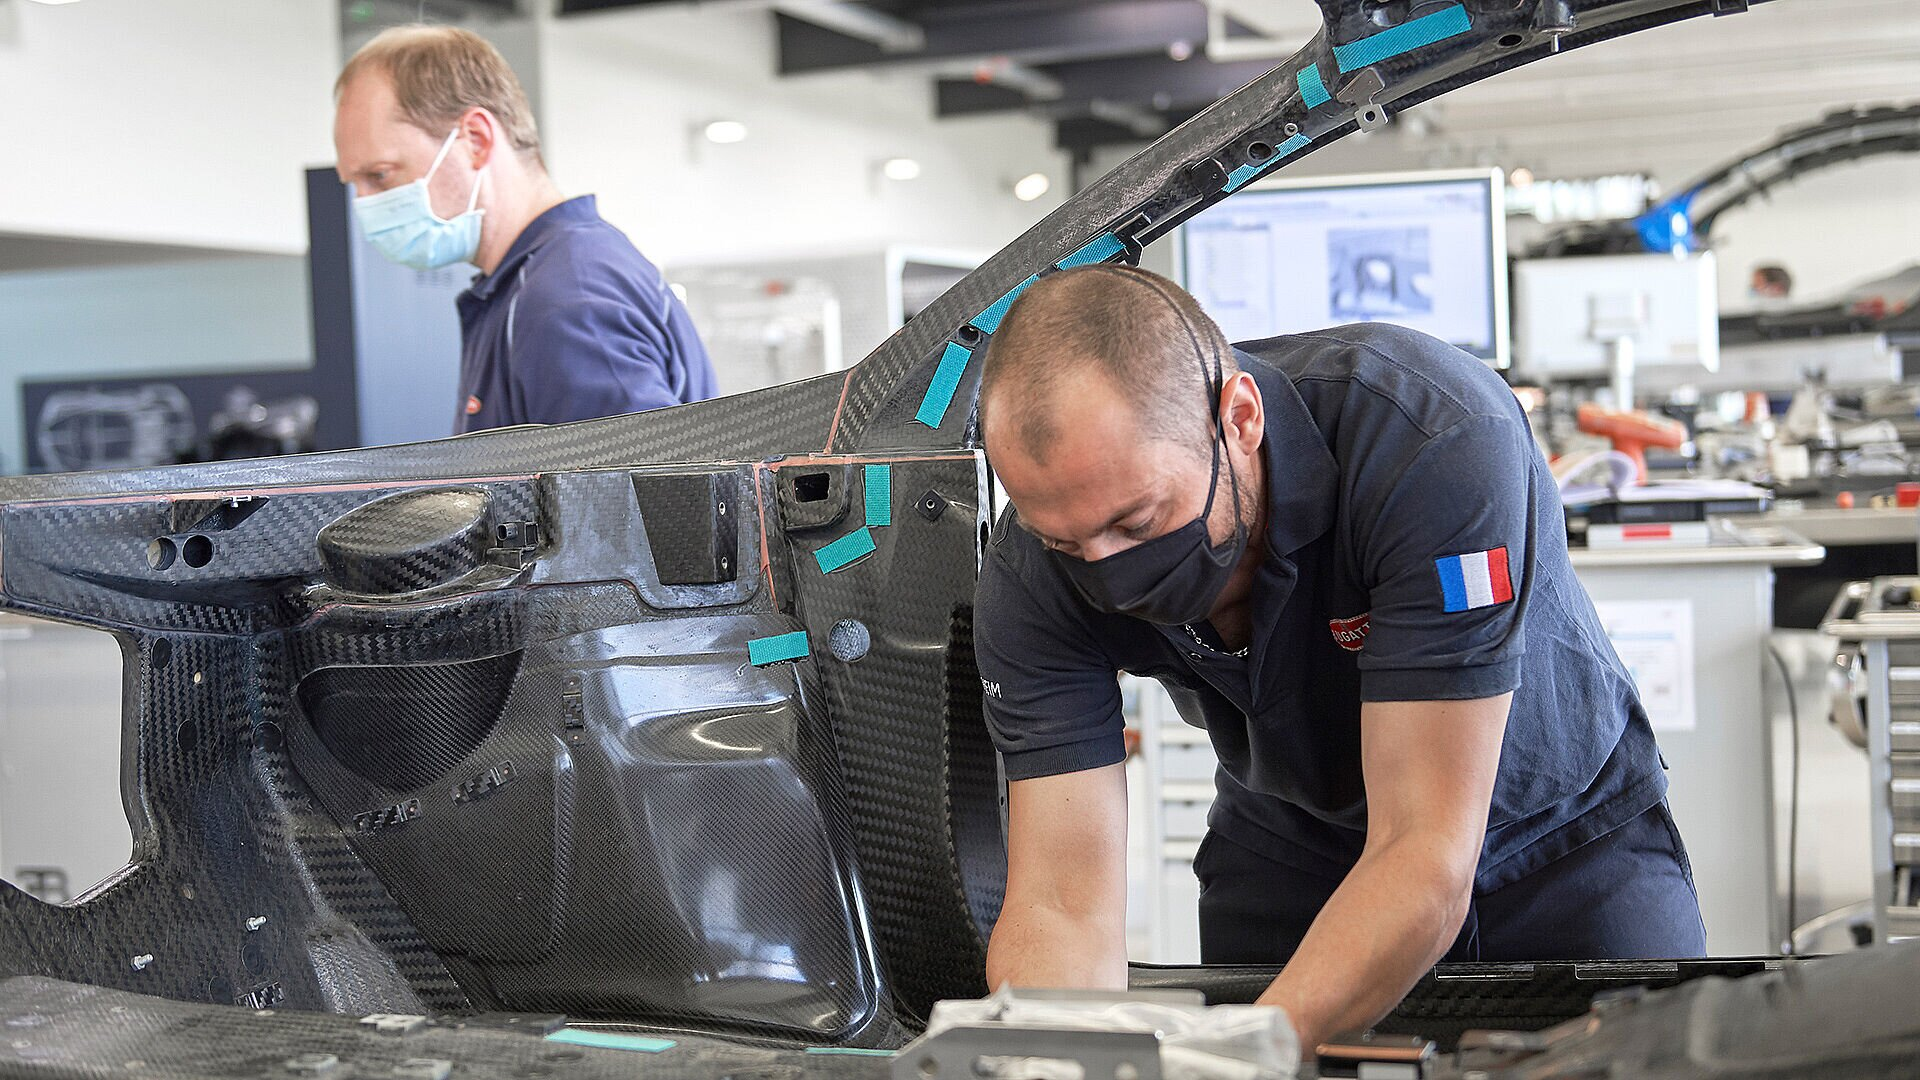 Covid-19 pandemic: Bugatti restarts production in the workshop - Image 3